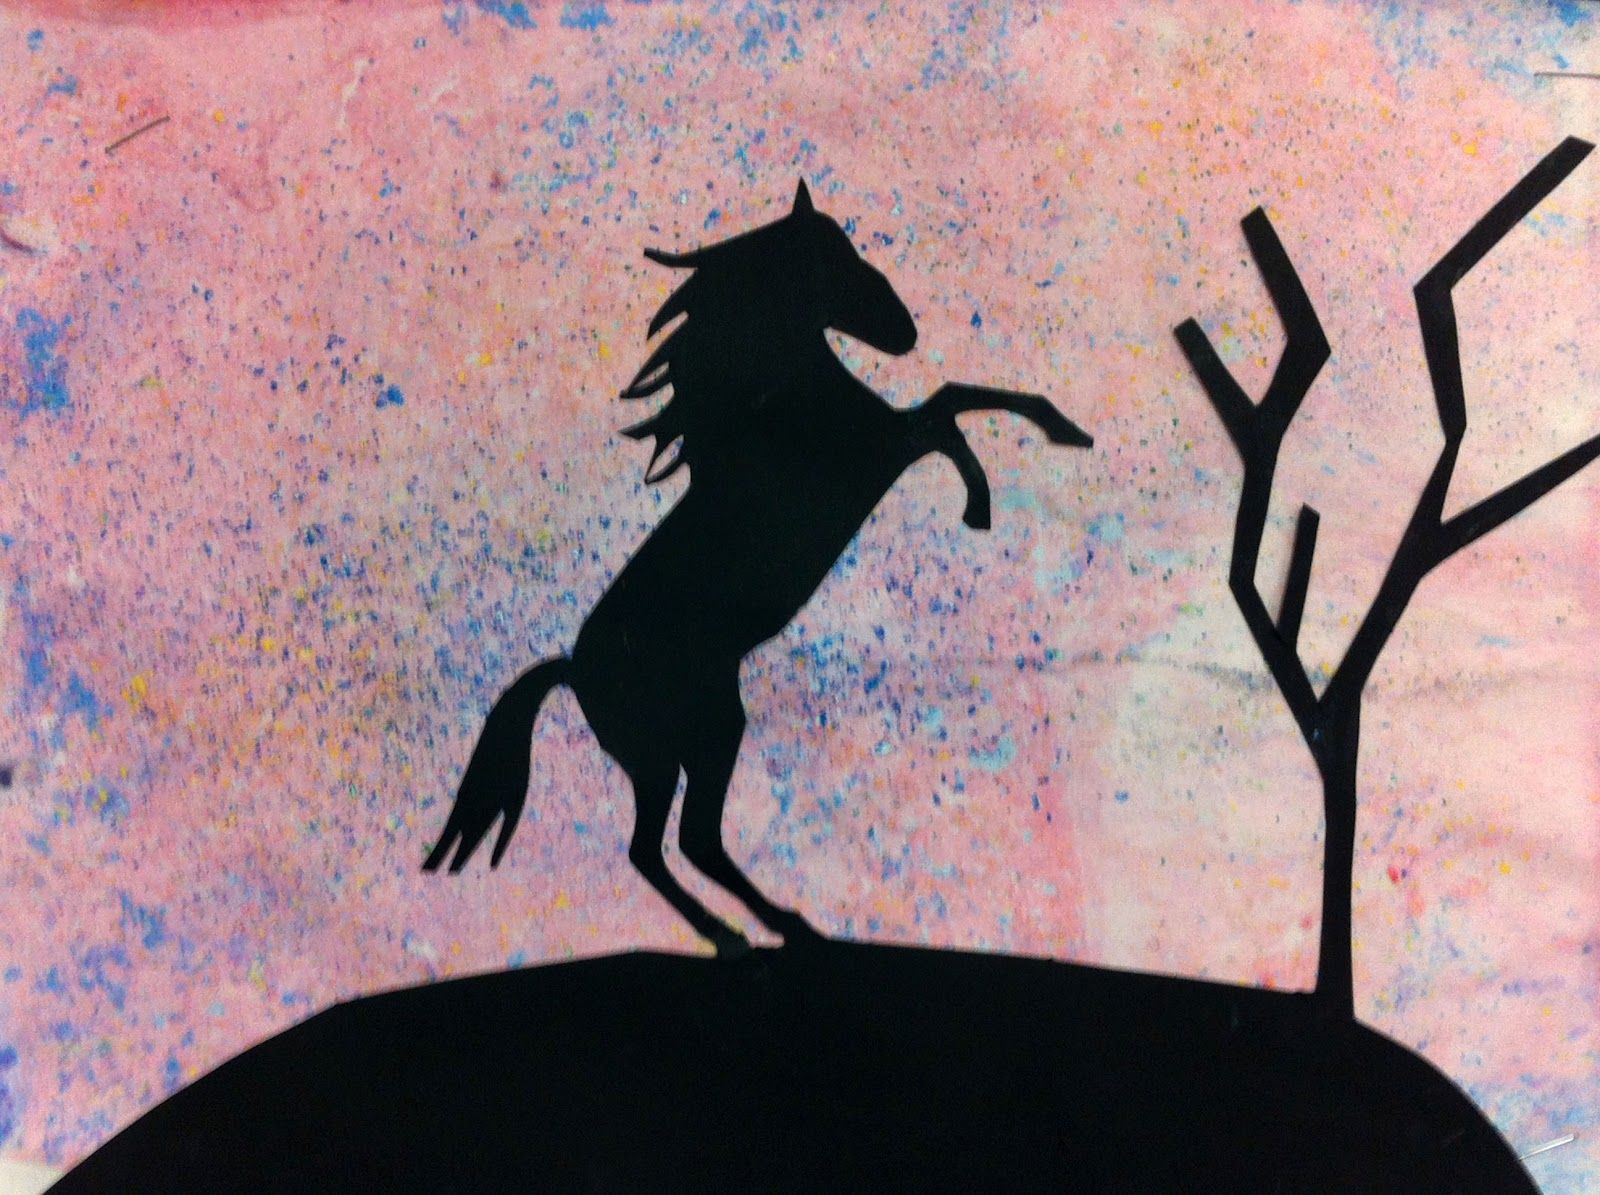 Artisan Des Arts Hand Dyed Paper With Silhouettes